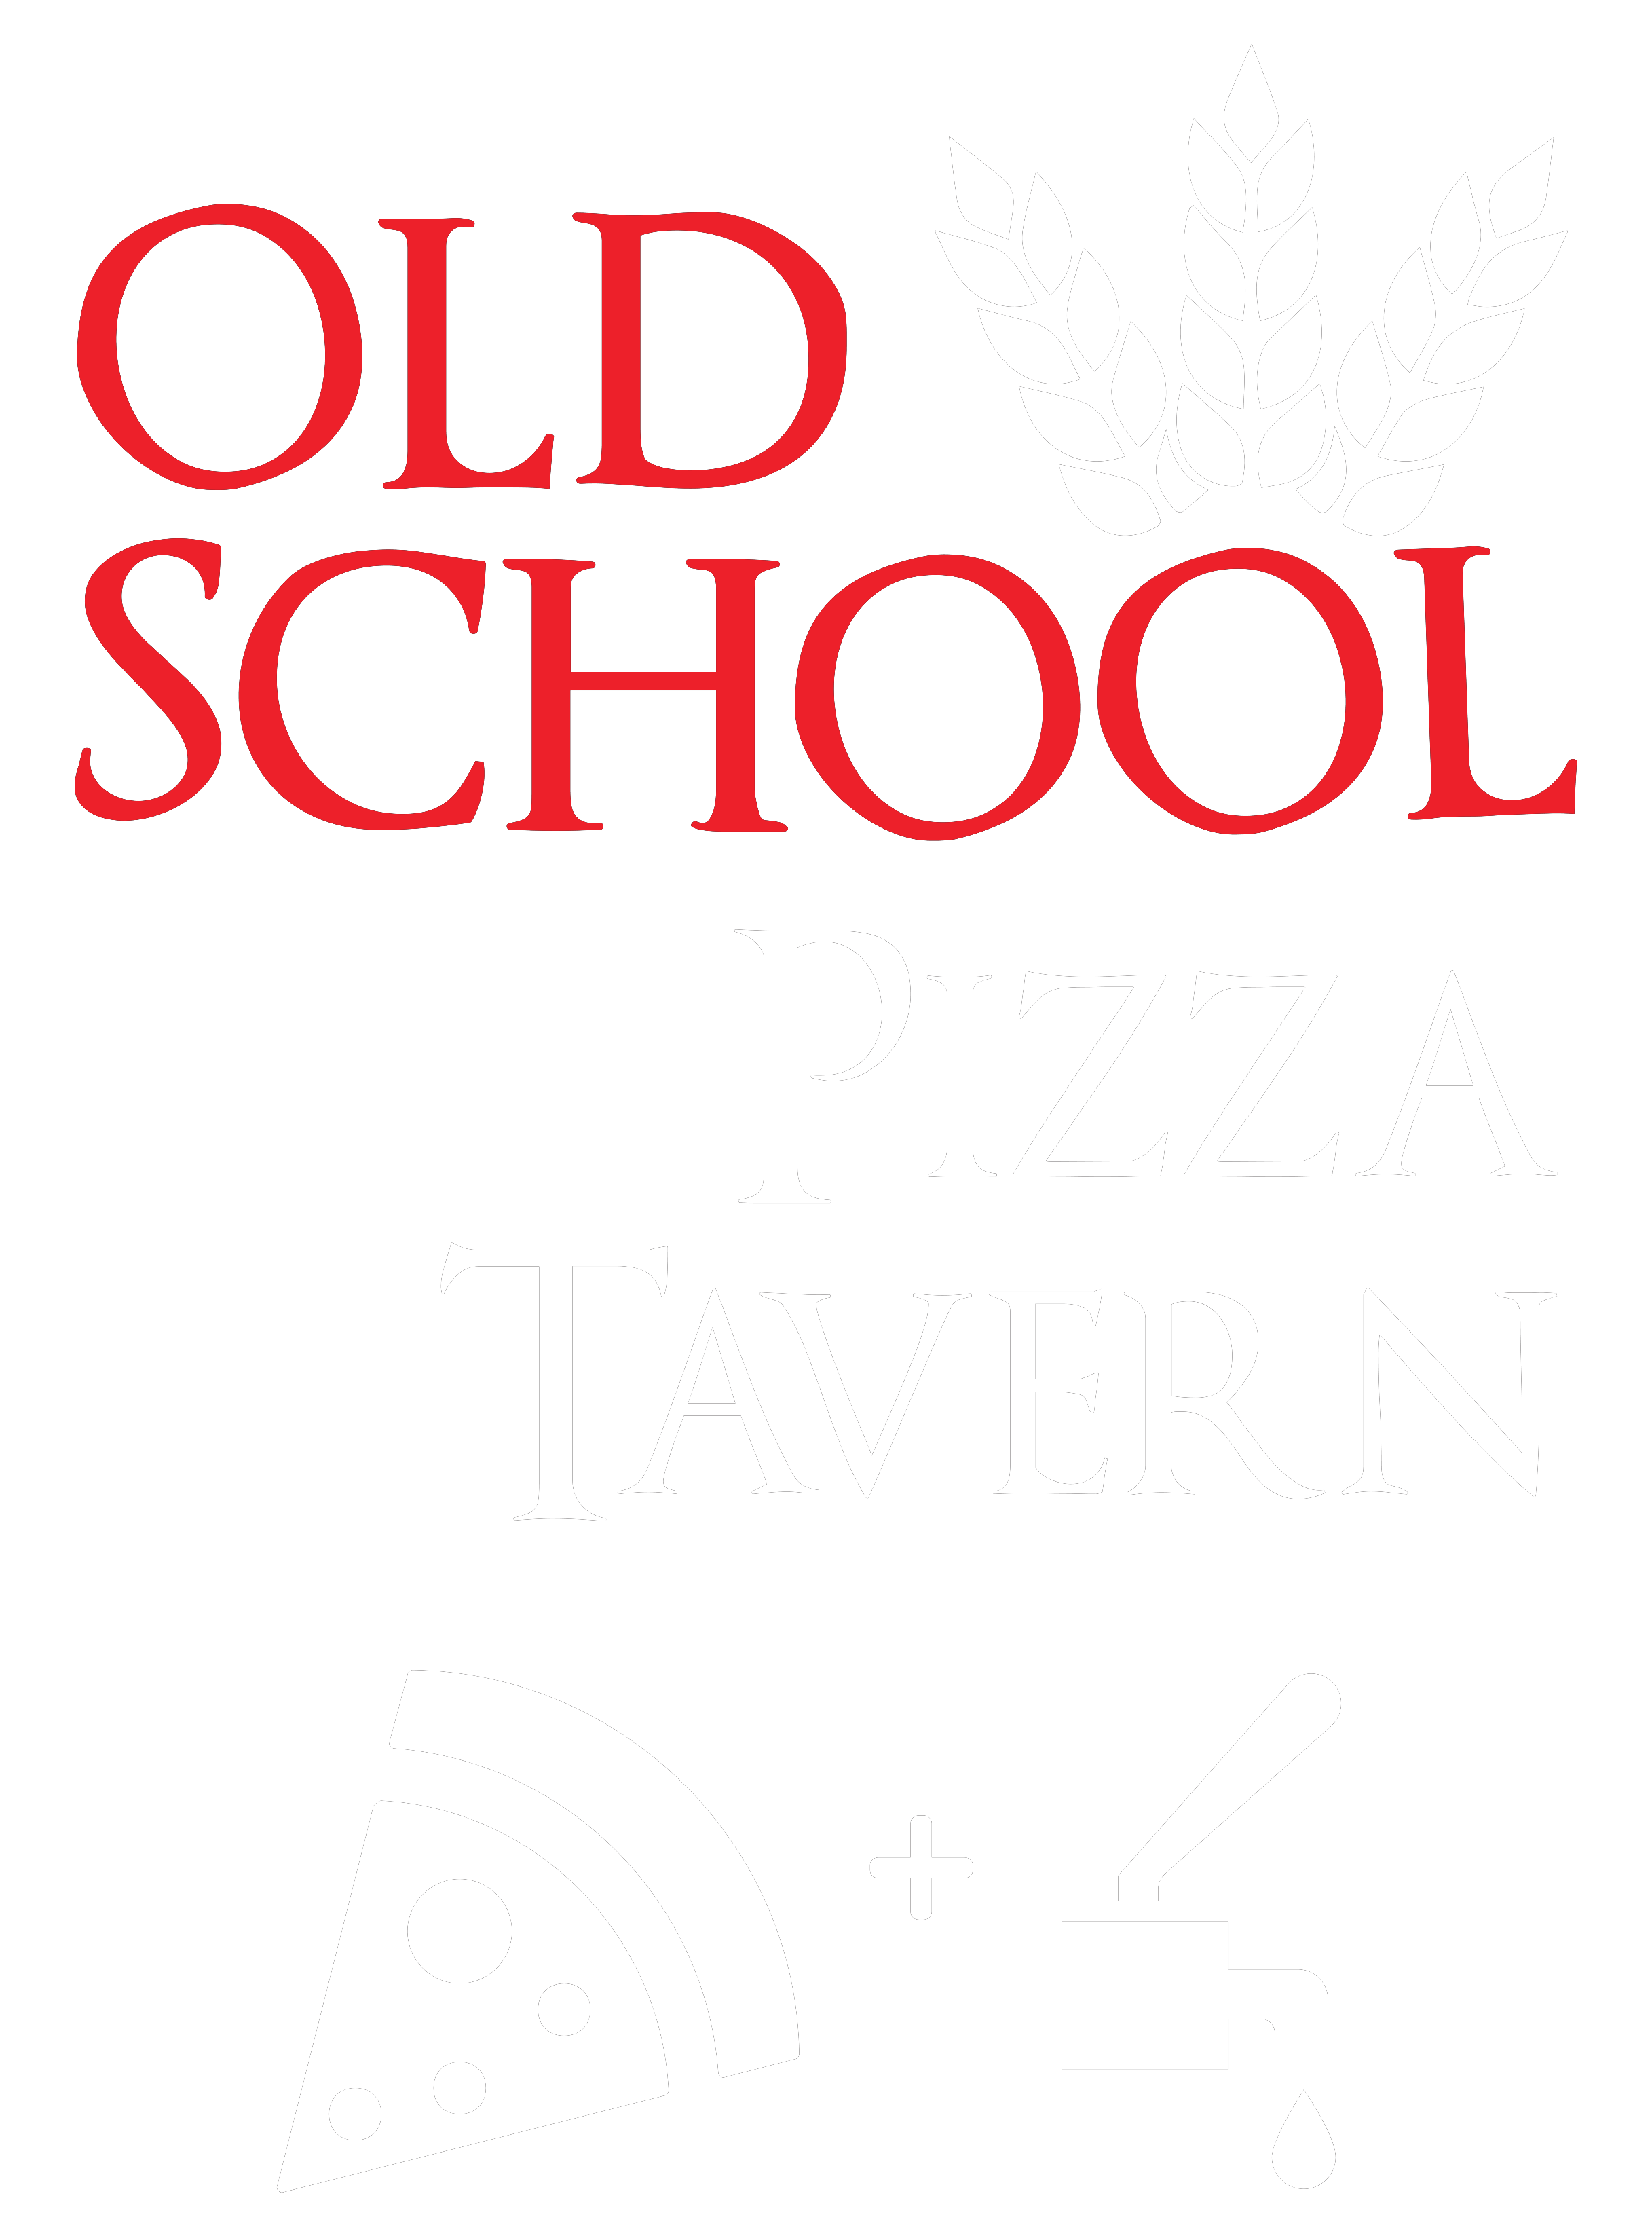 Old School Pizza Tavern Home